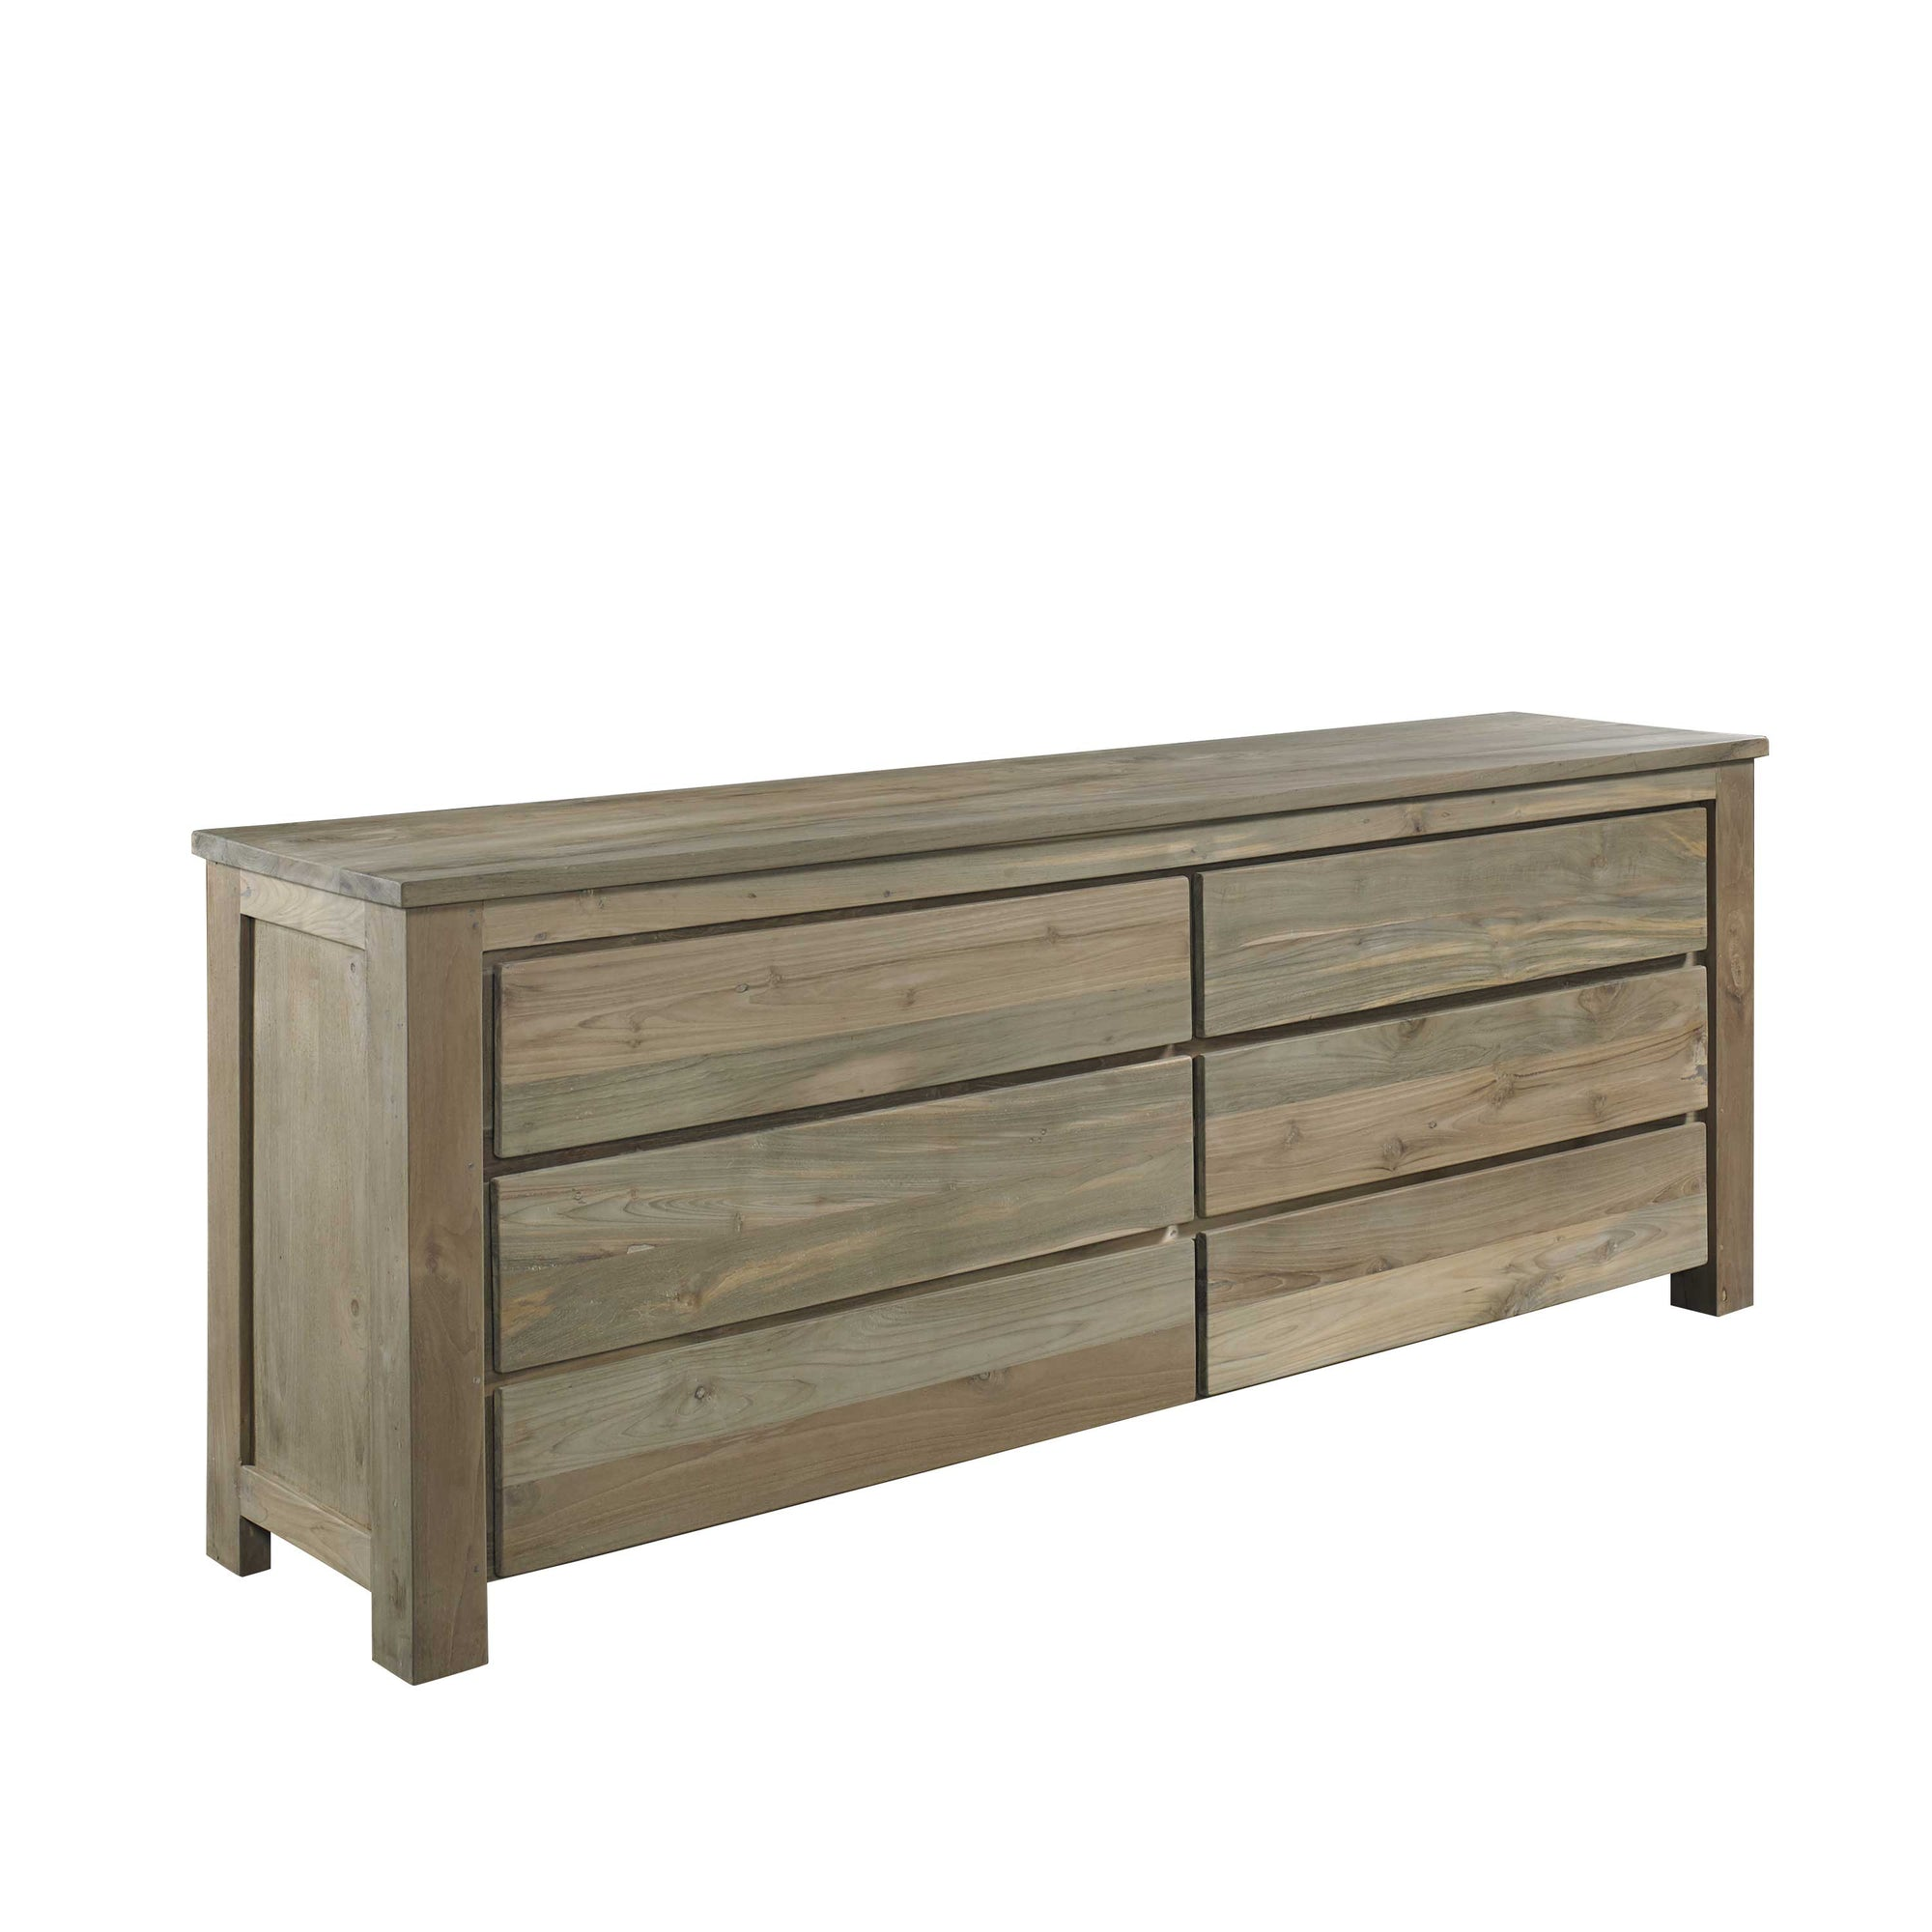 Stockholm Reclaimed Teak Chest of Drawers Padma's Plantation